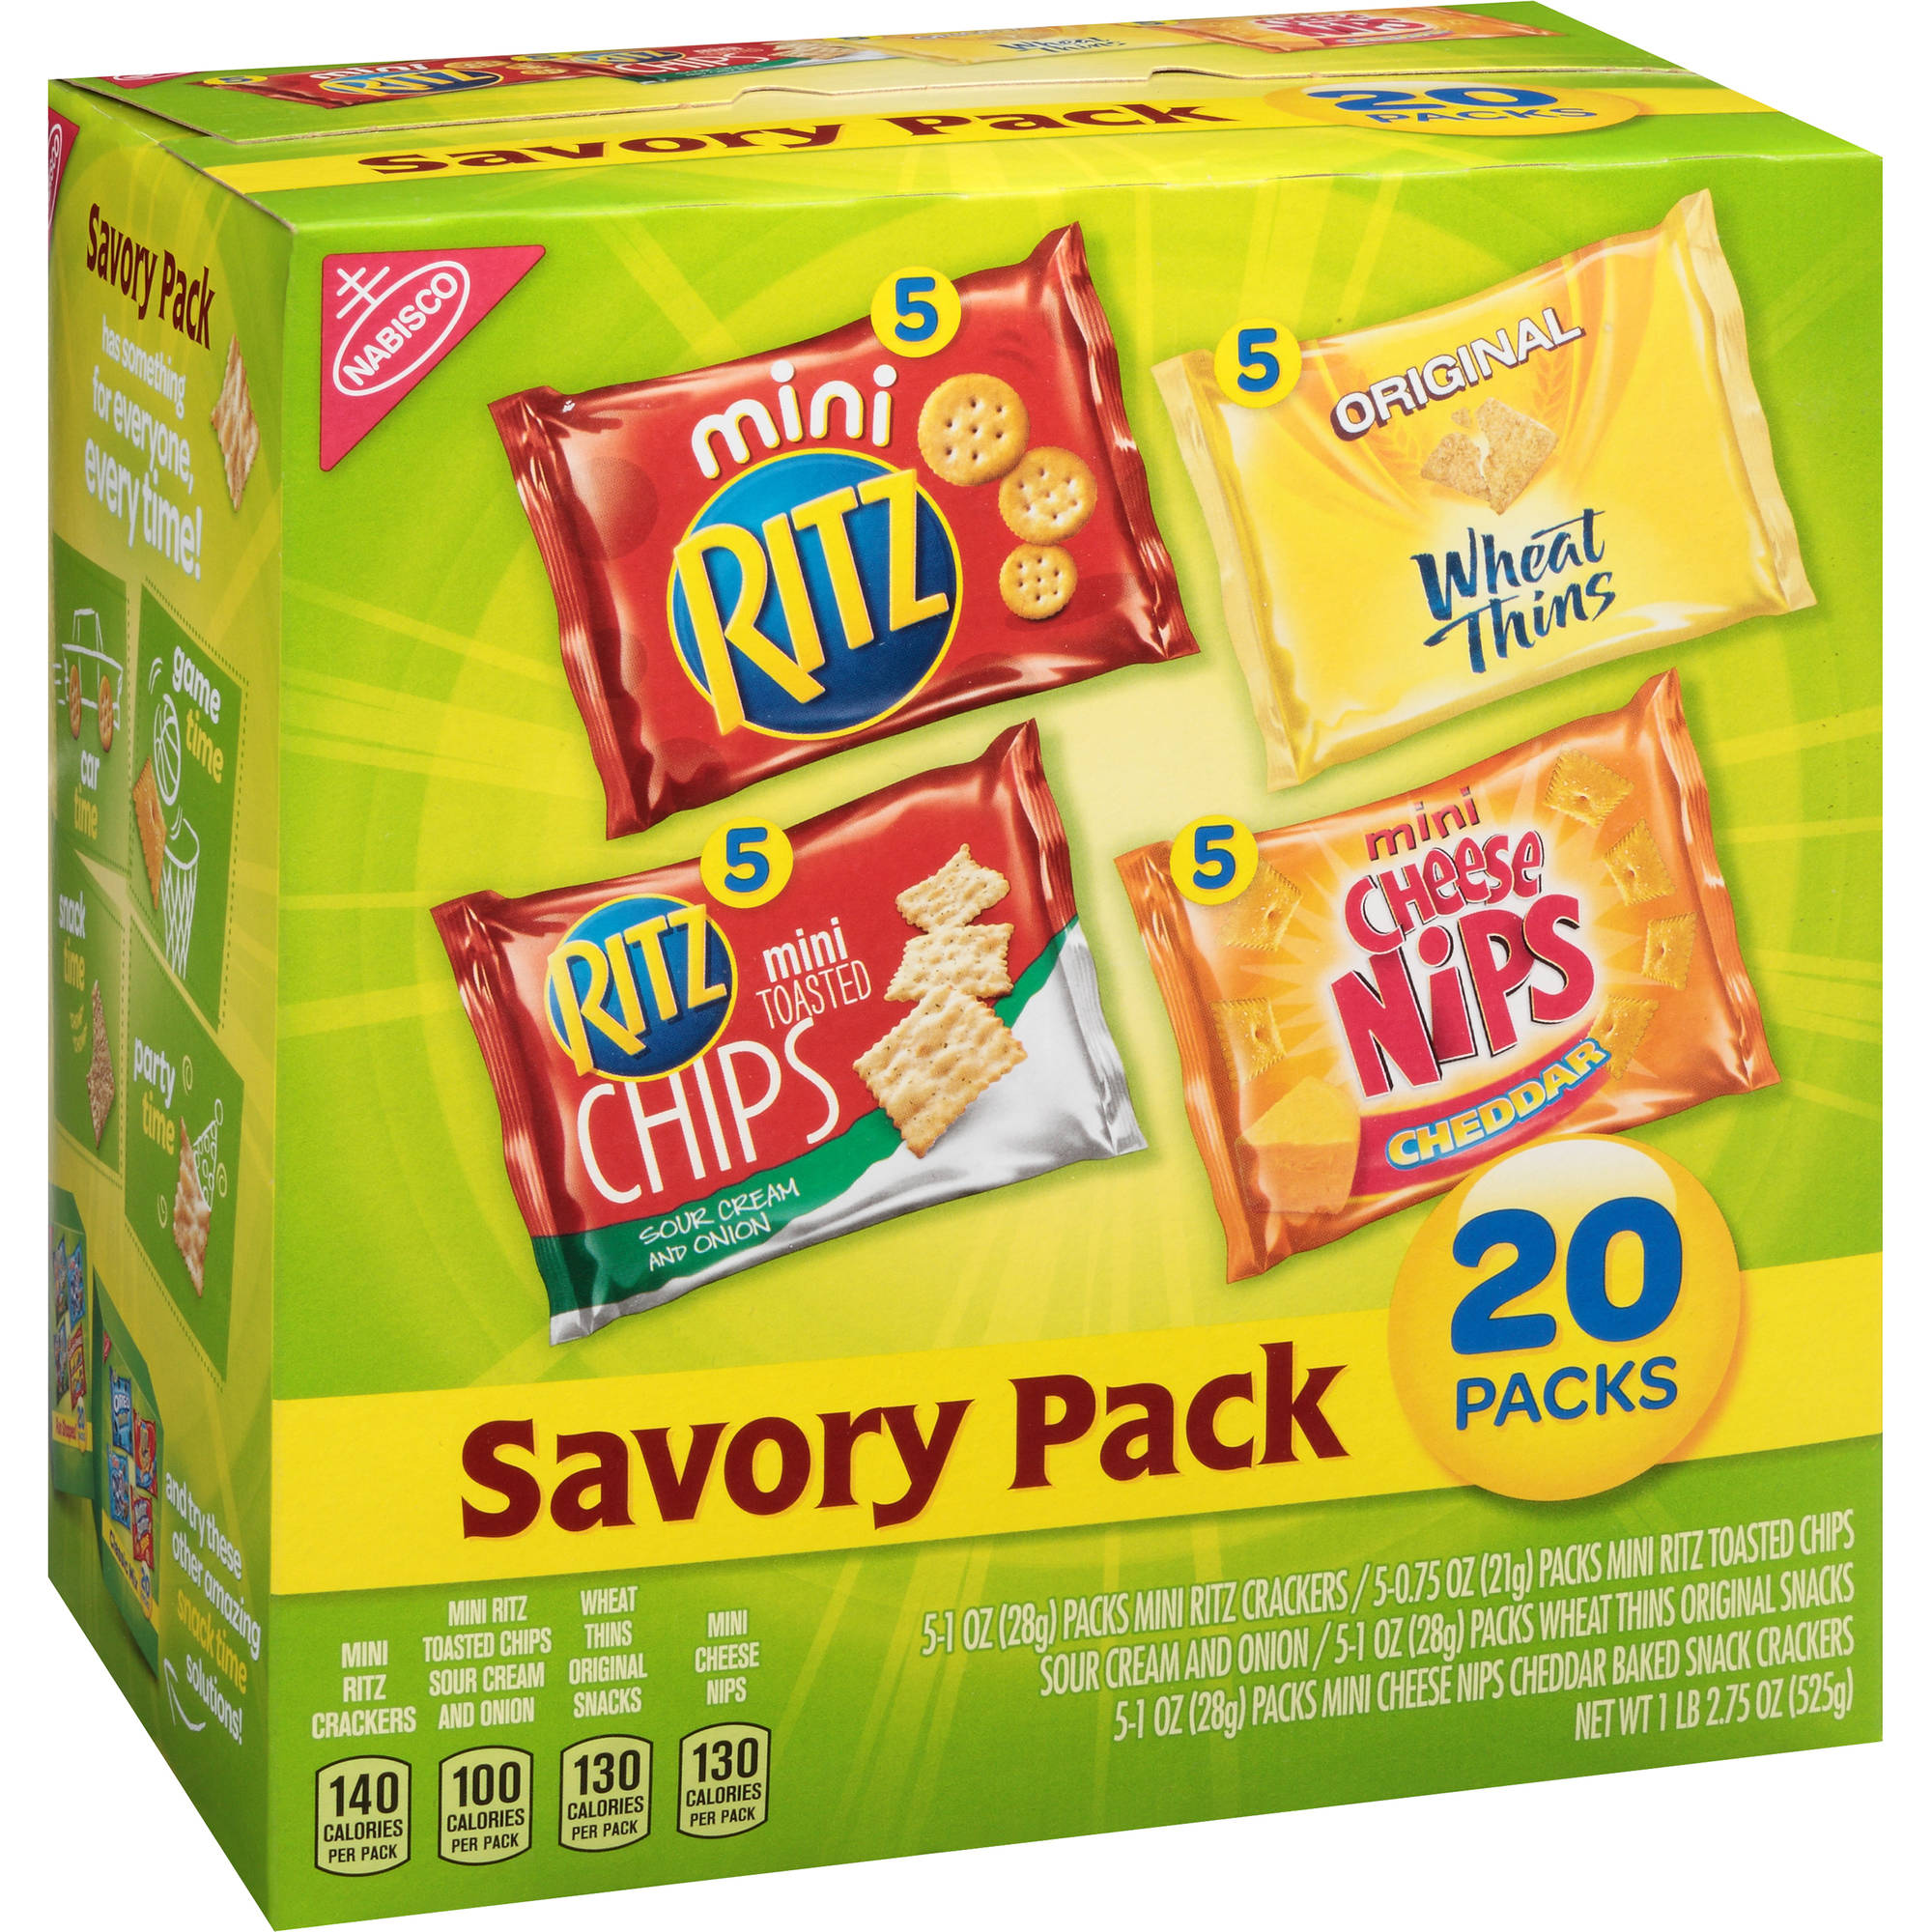 Nabisco Savory Pack Snacks Variety Pack, 20 count, 18.75 oz